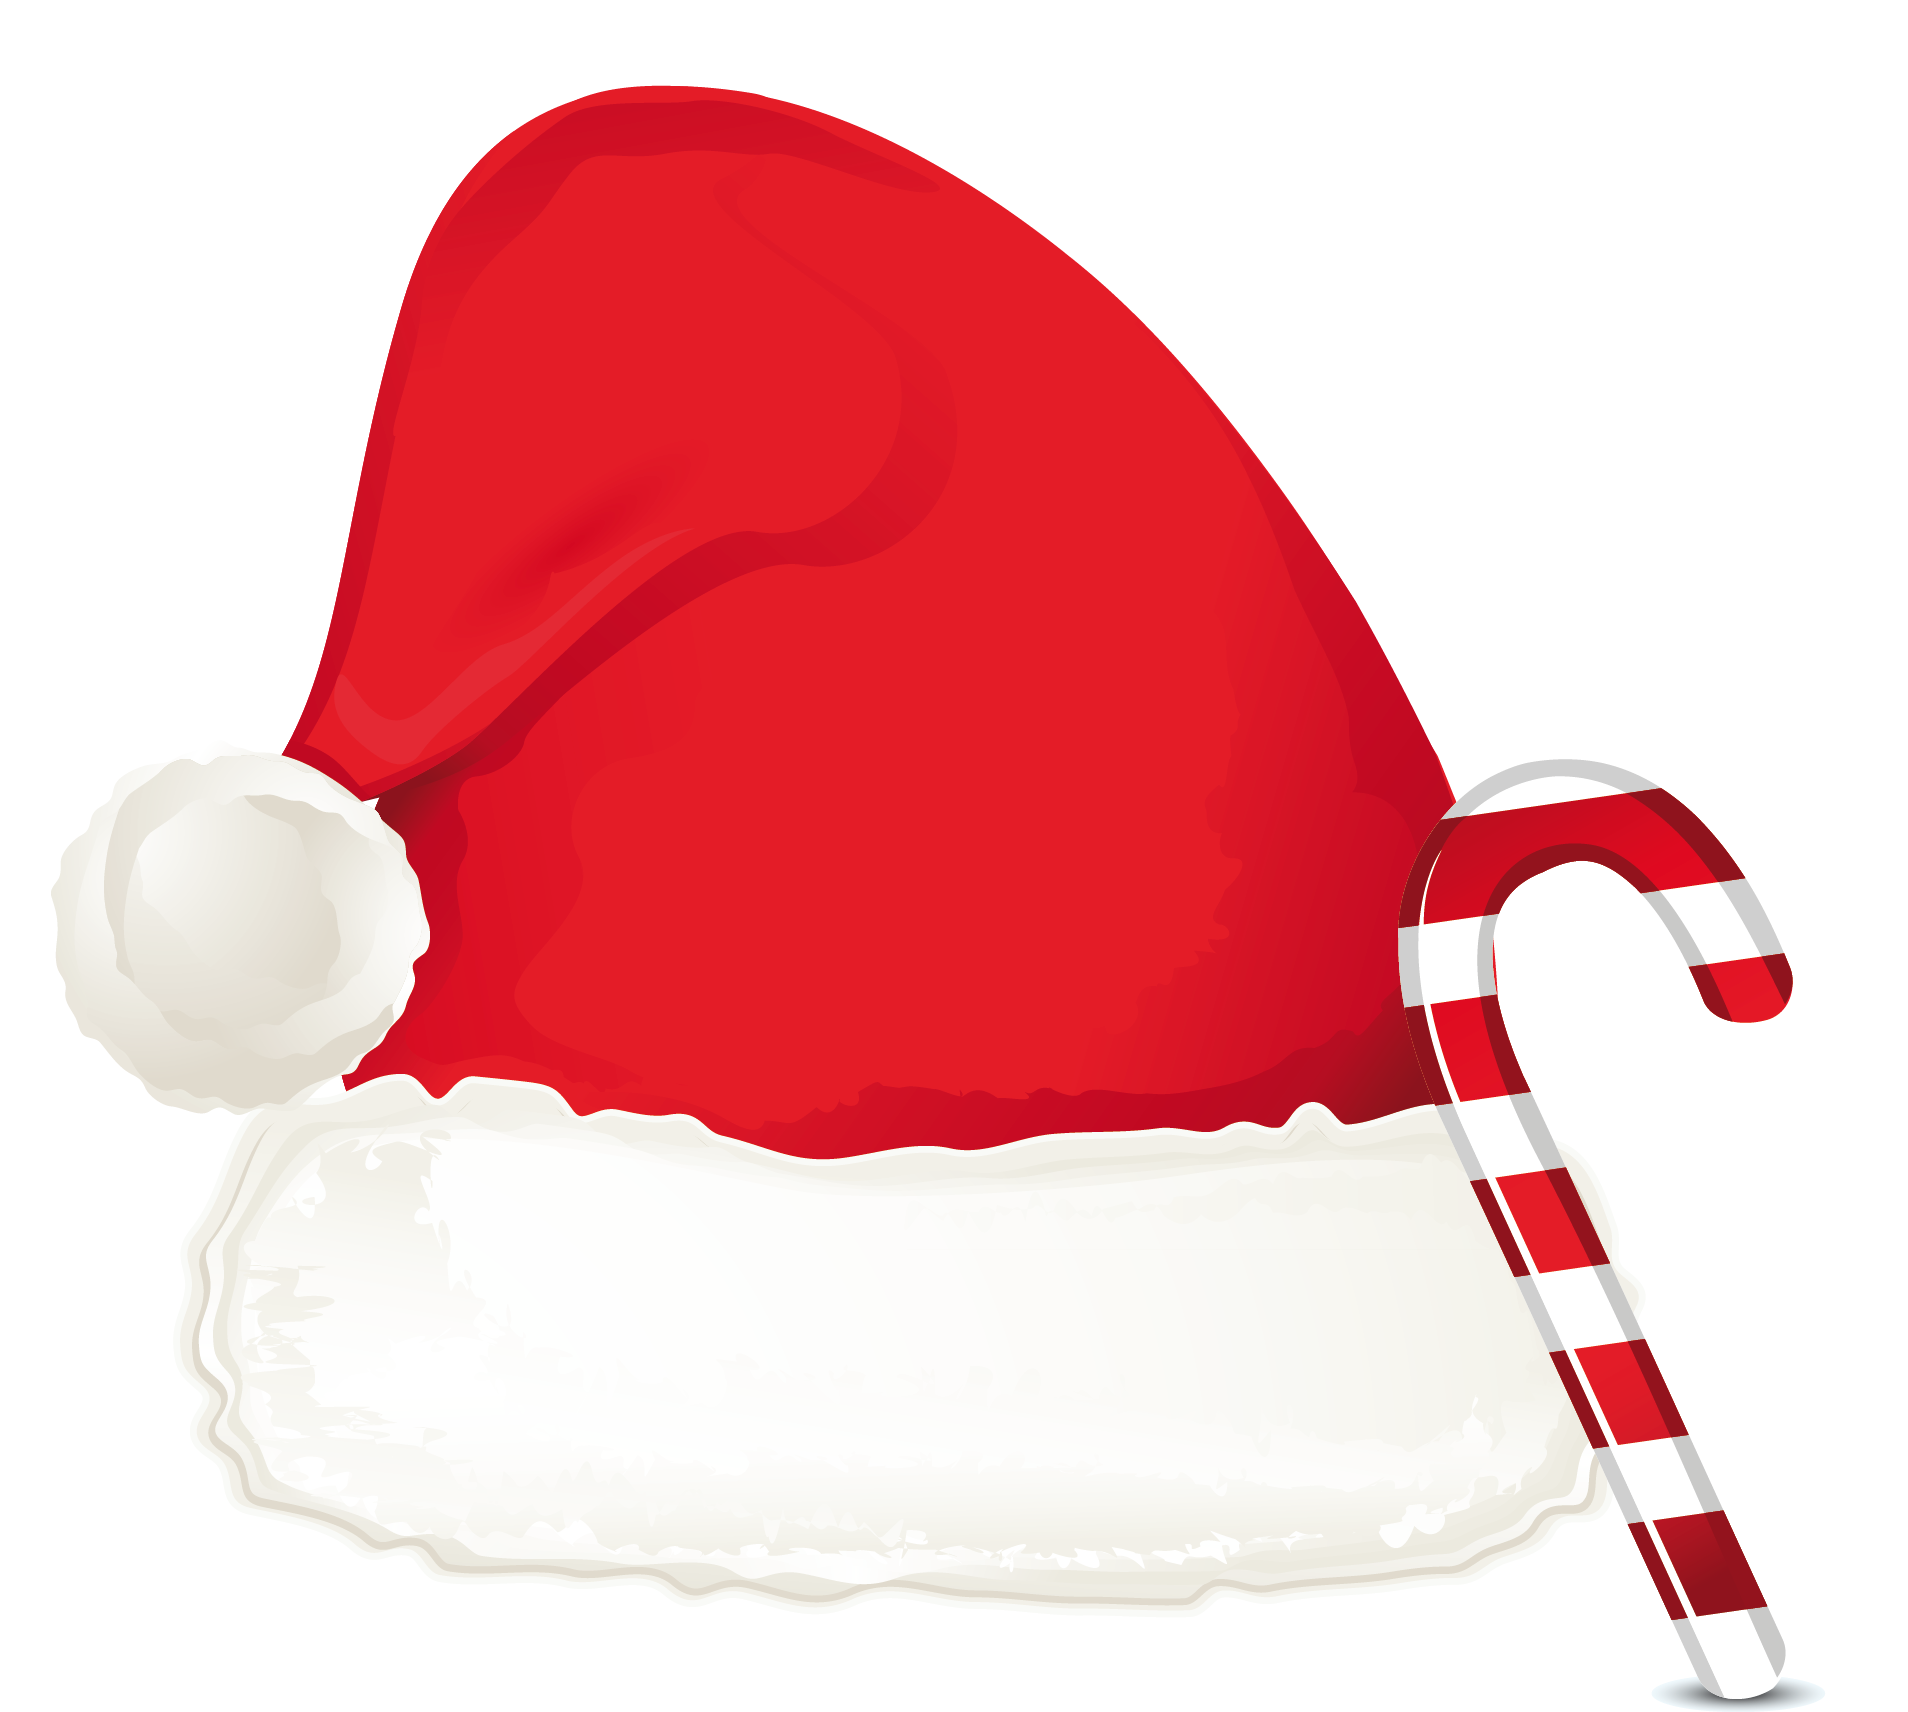 Christmas Candy Png.Christmas Candy Cane Ornament And Santa Hat Png Clipart